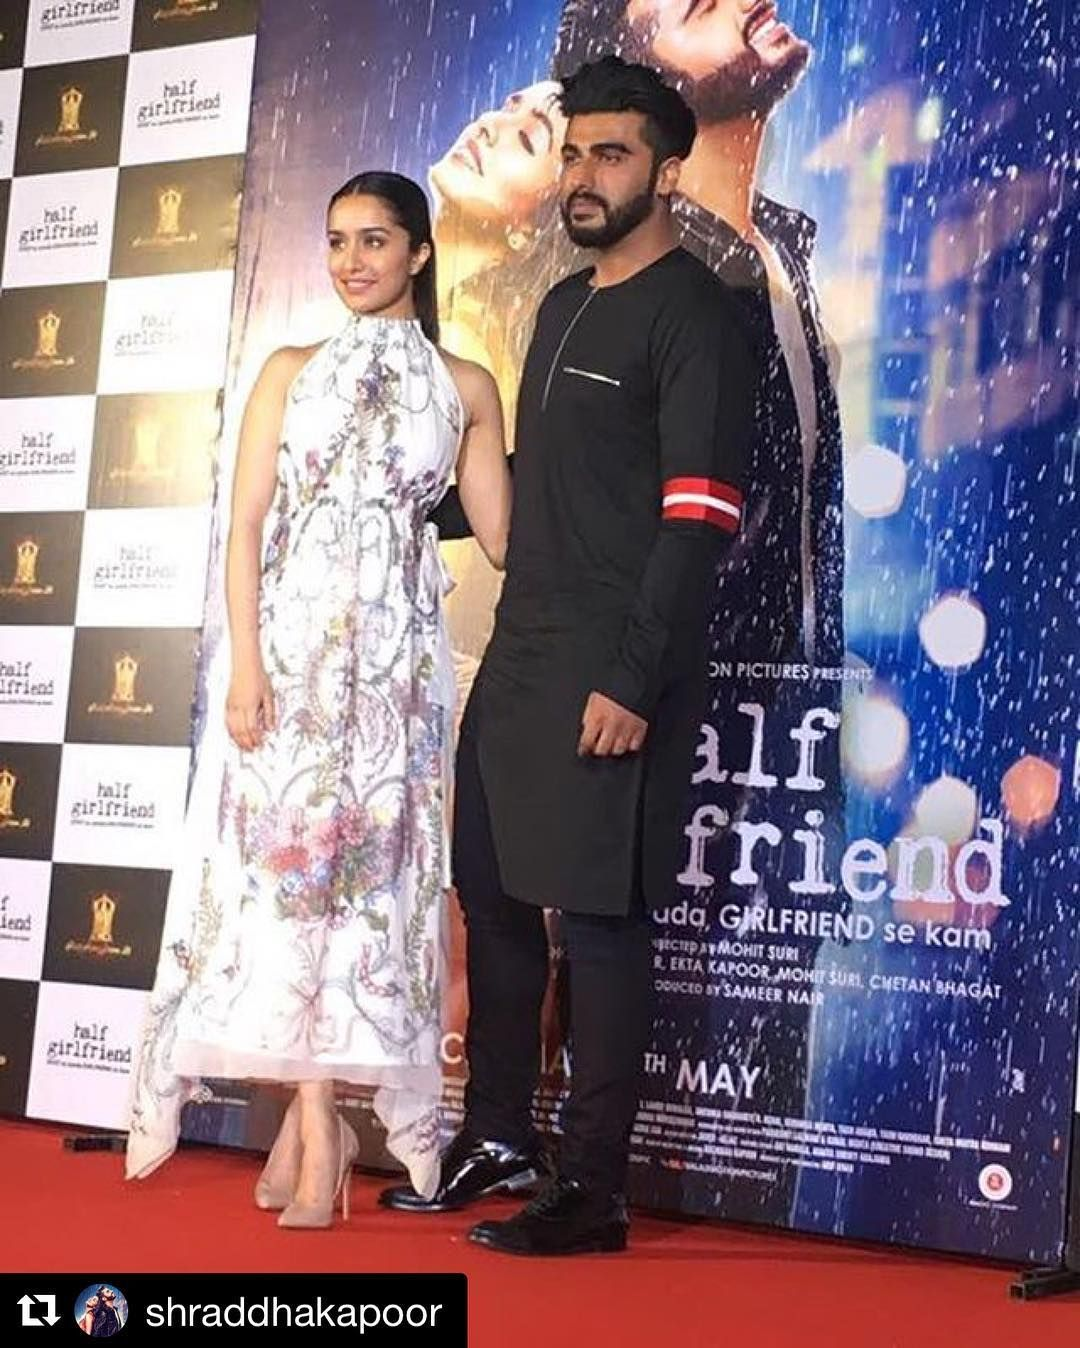 With my #halfgirlfriend !!! At the trailer launch with @shraddhakapoor !!! #Repost @shraddhakapoor with @repostapp ・・・